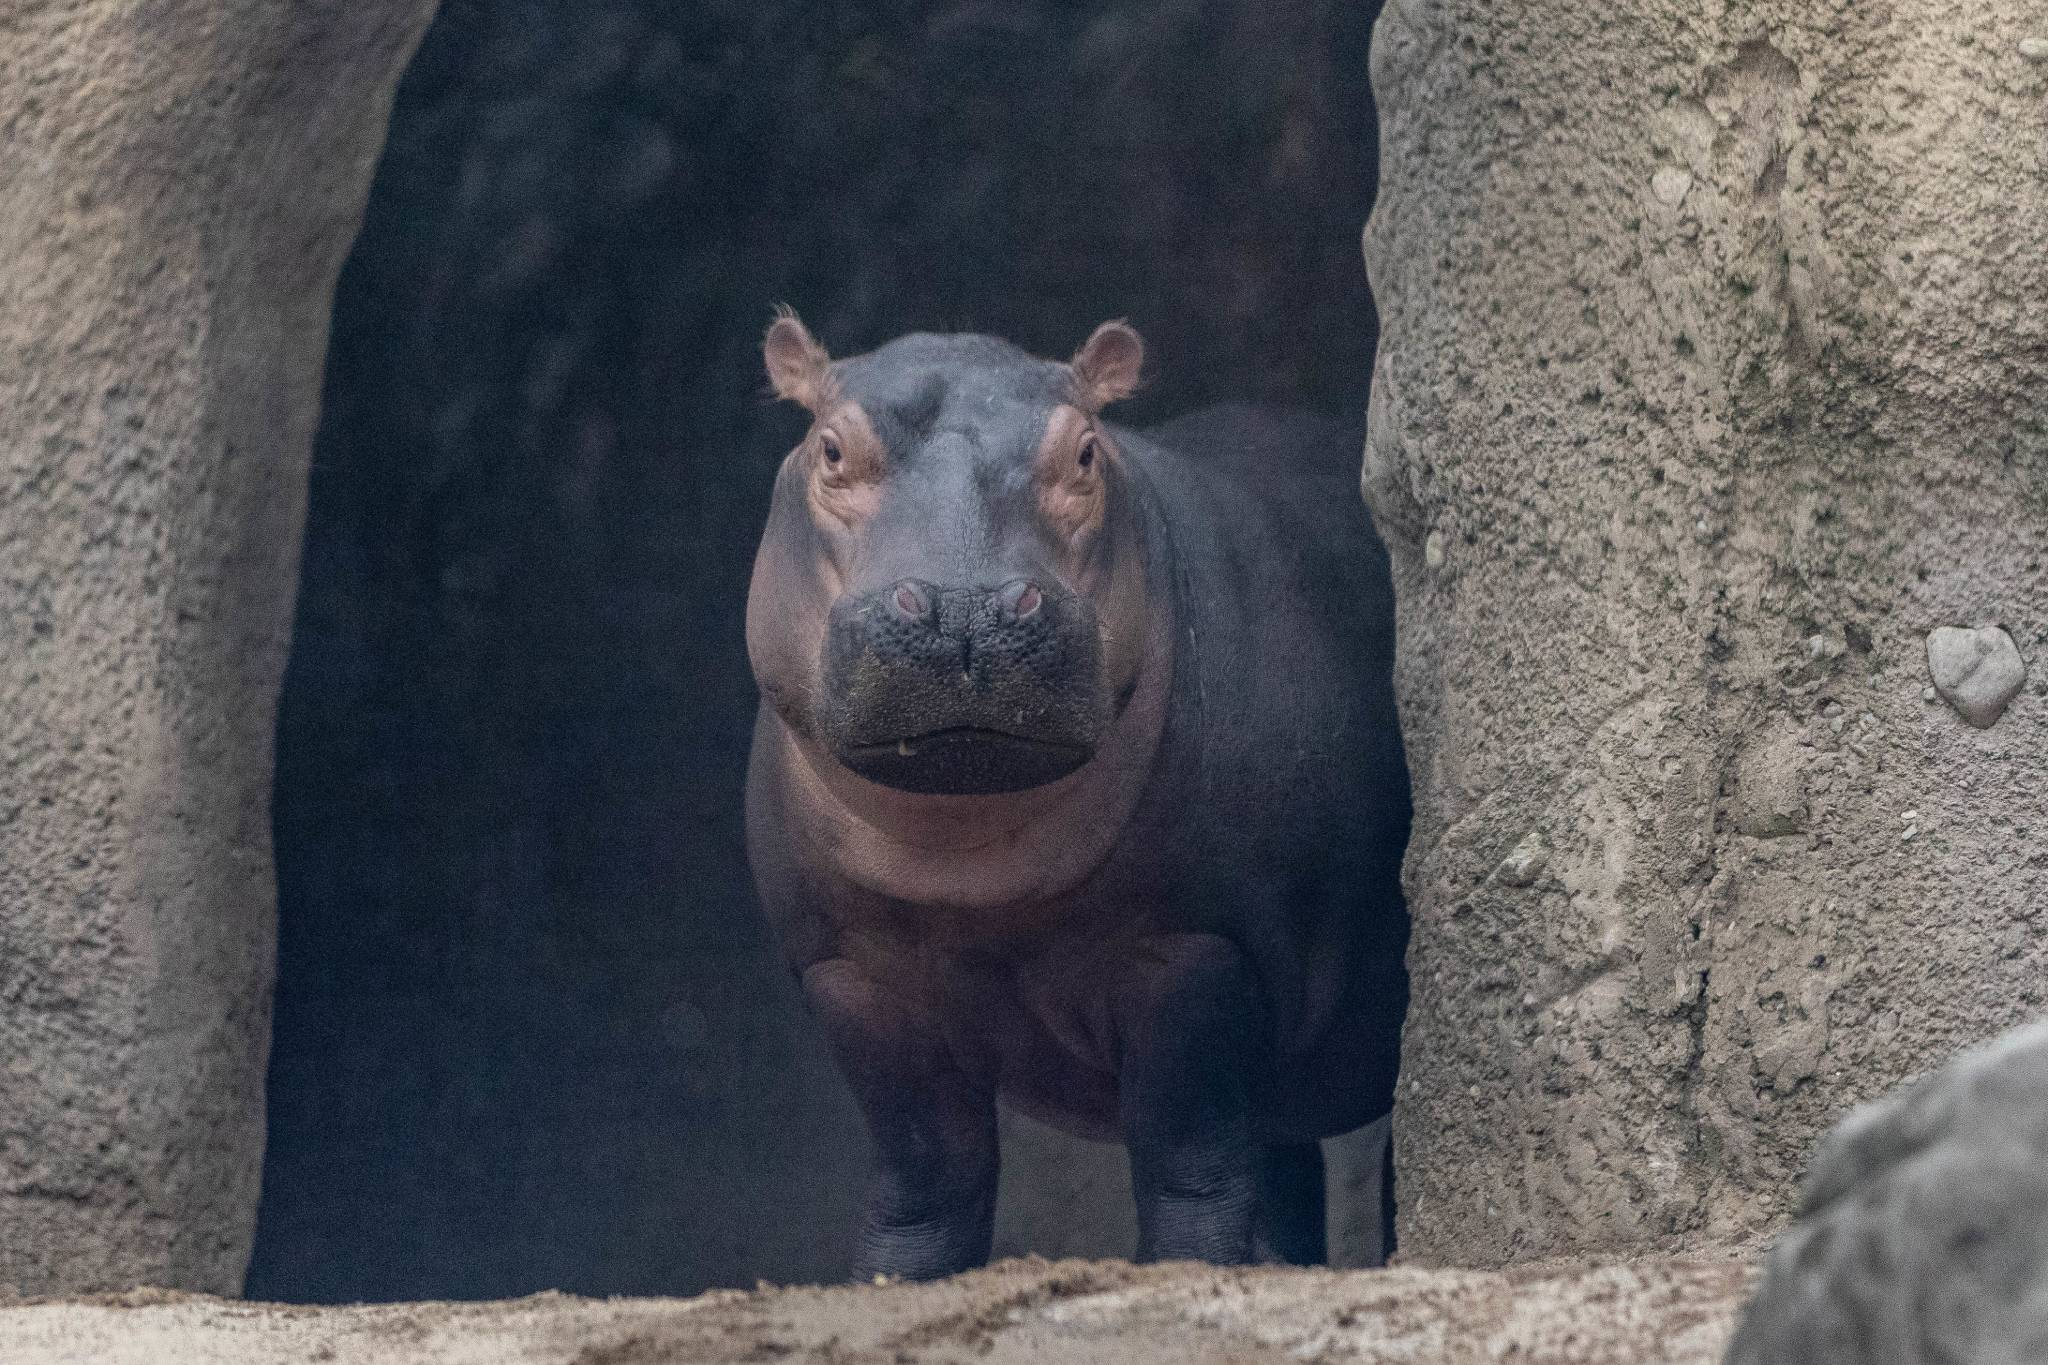 Meet Fiona the hippo, the super-cute Cinci Zoo baby who's melting our hearts